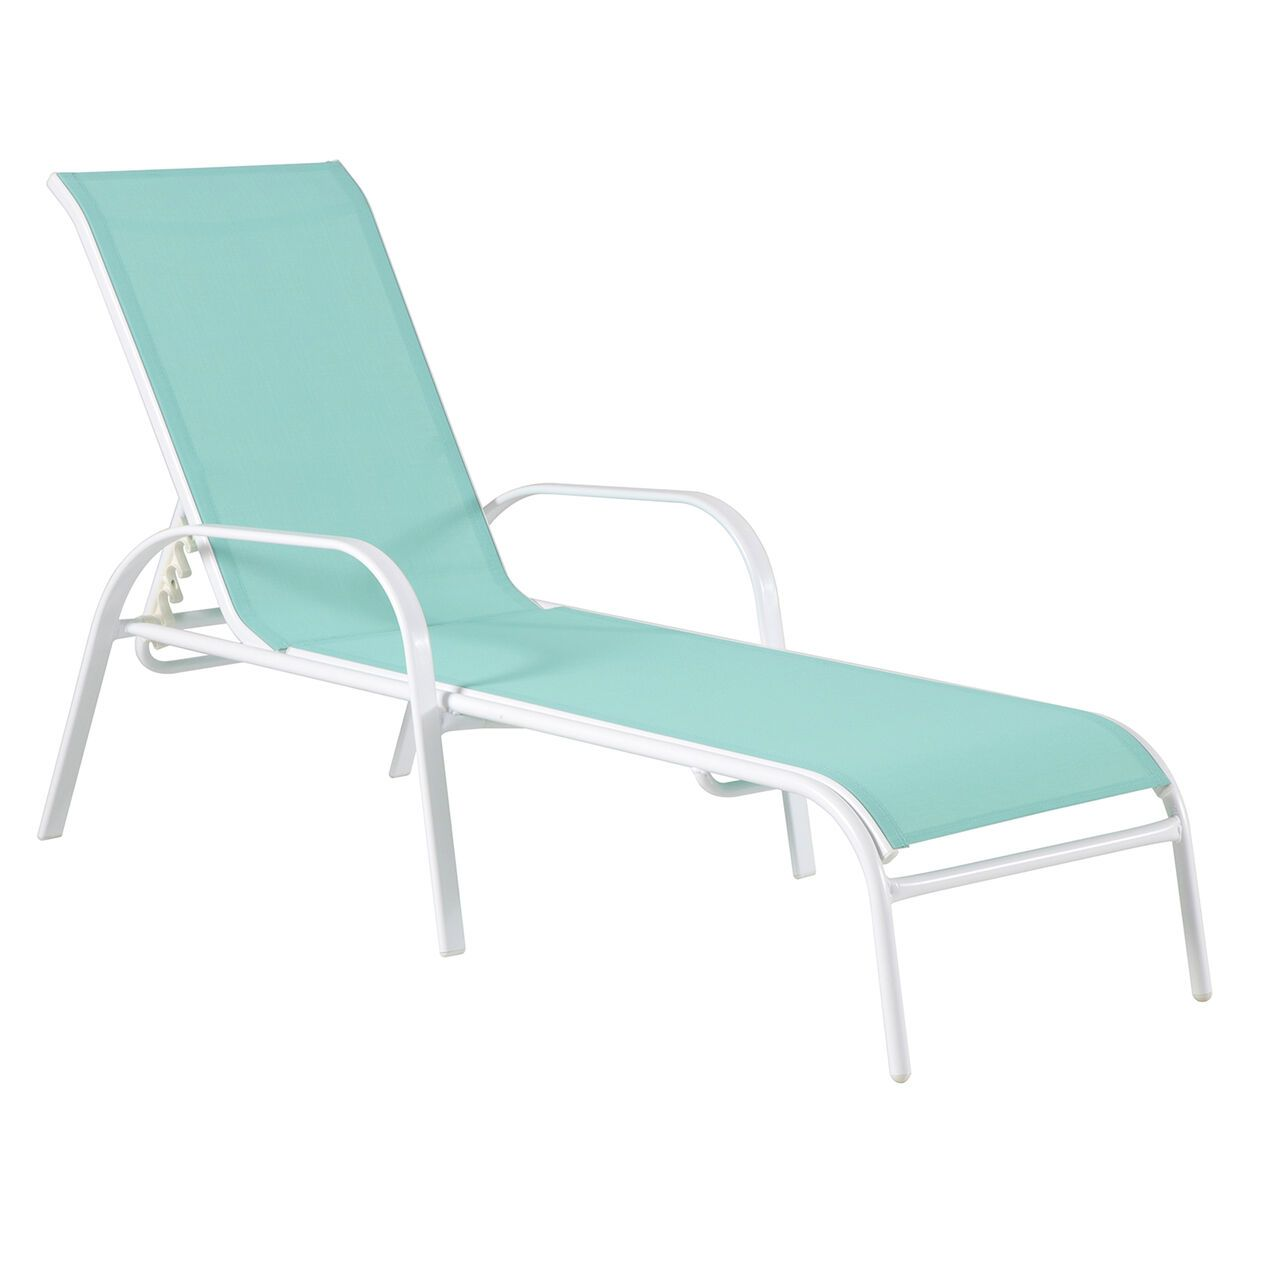 Steel-Frame Stackable Sling Chaise Lounge, Aqua/White in ... on Living Accents Sling Folding Chaise id=17596